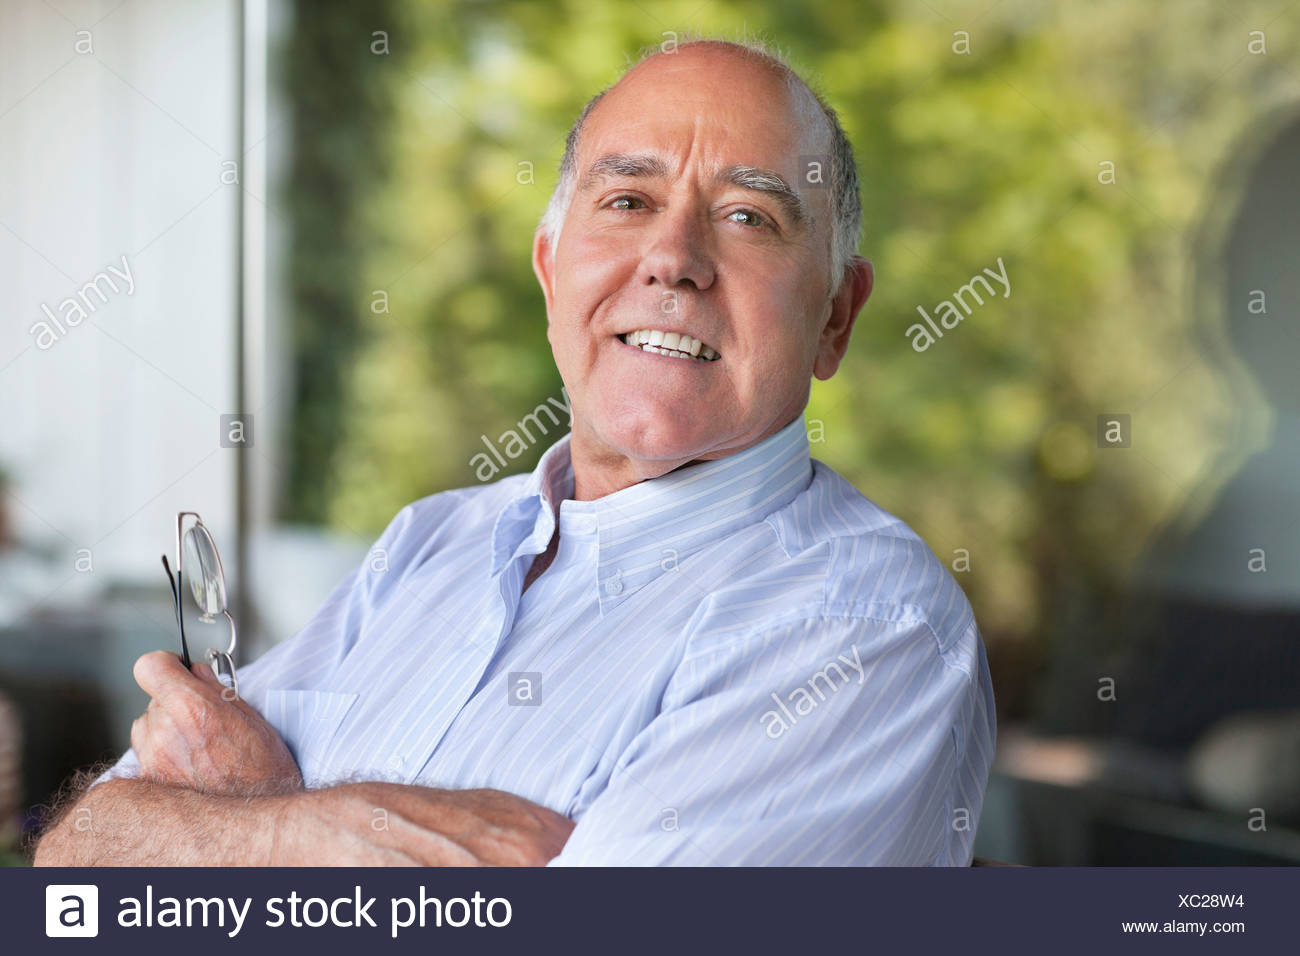 Smiling man with arms crossed - Stock Image